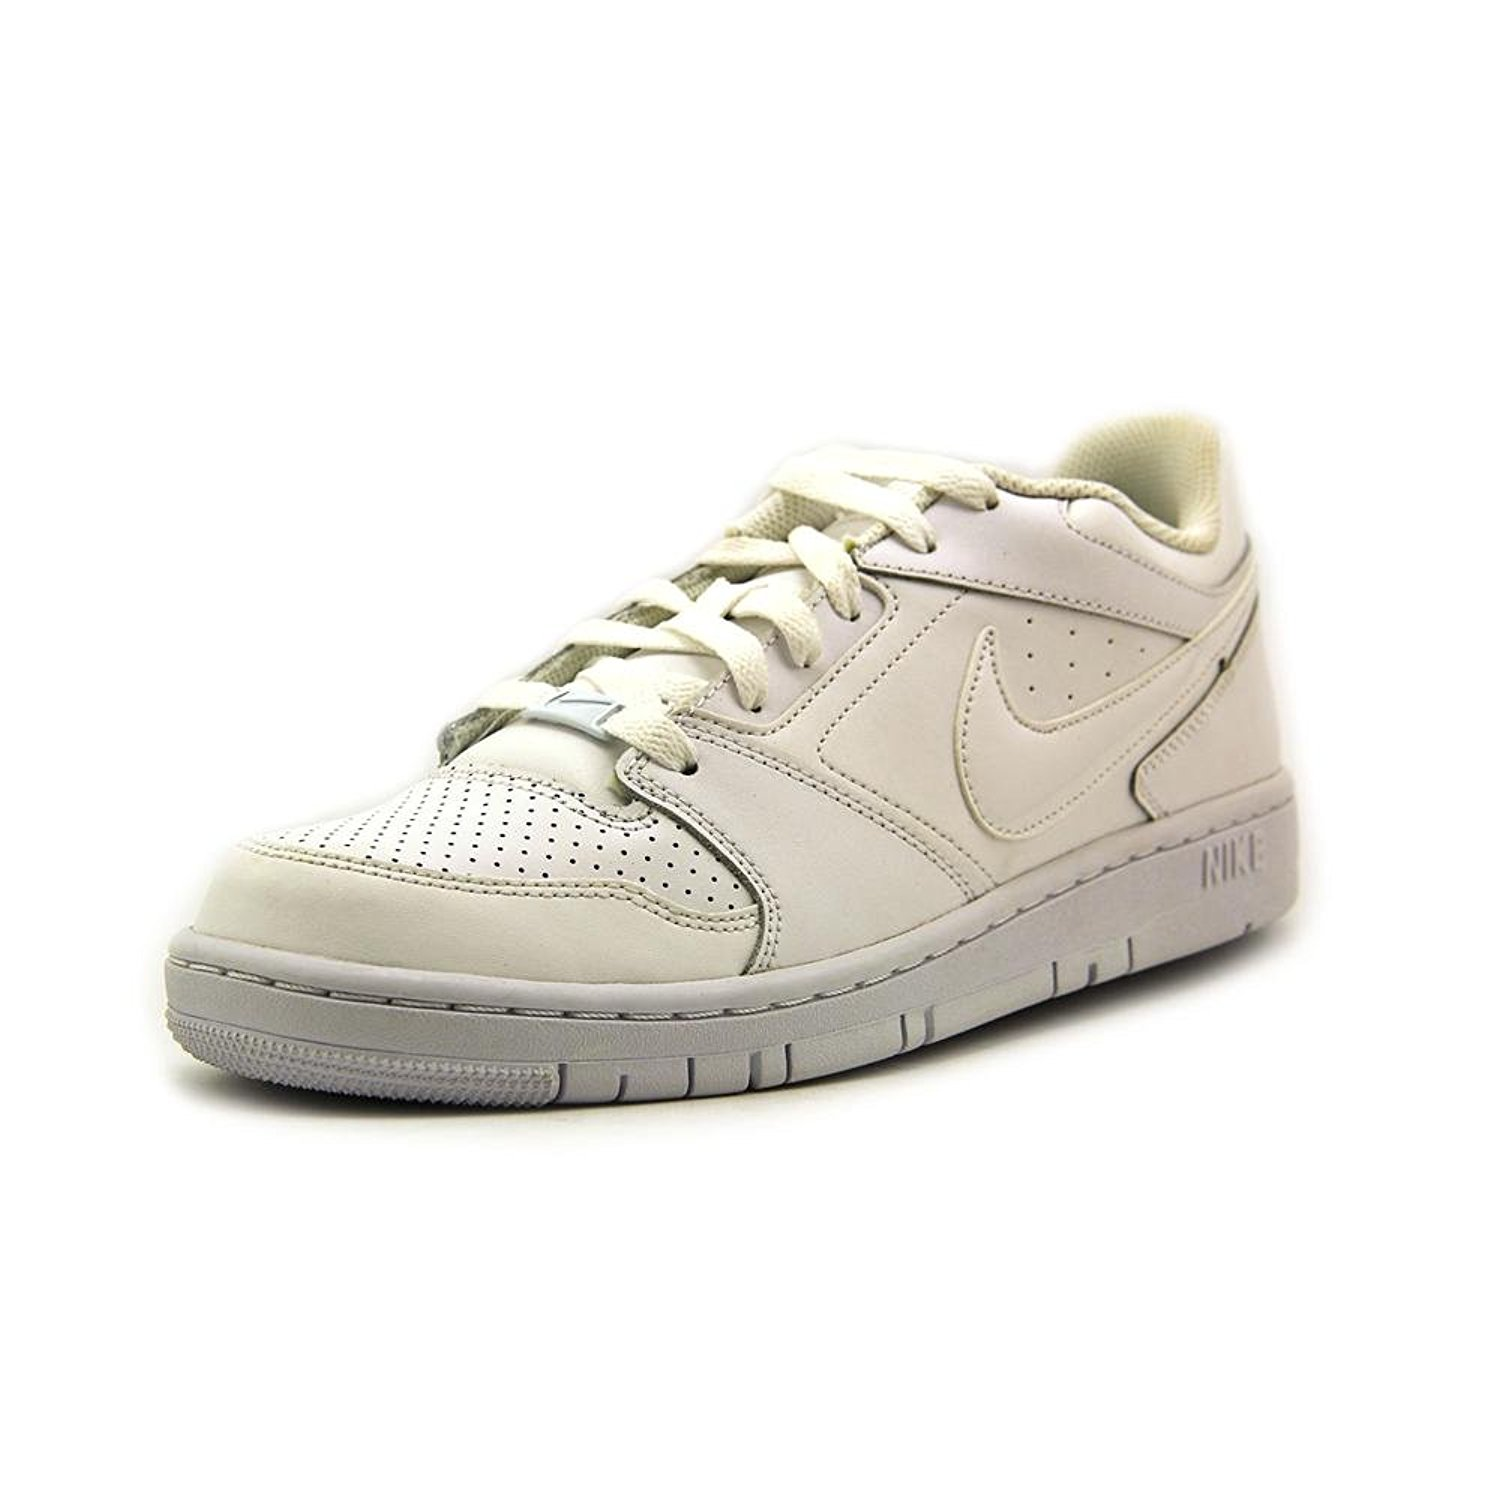 Nike Prestige IV Men US 10 White Sneakers UK 9 EU 44